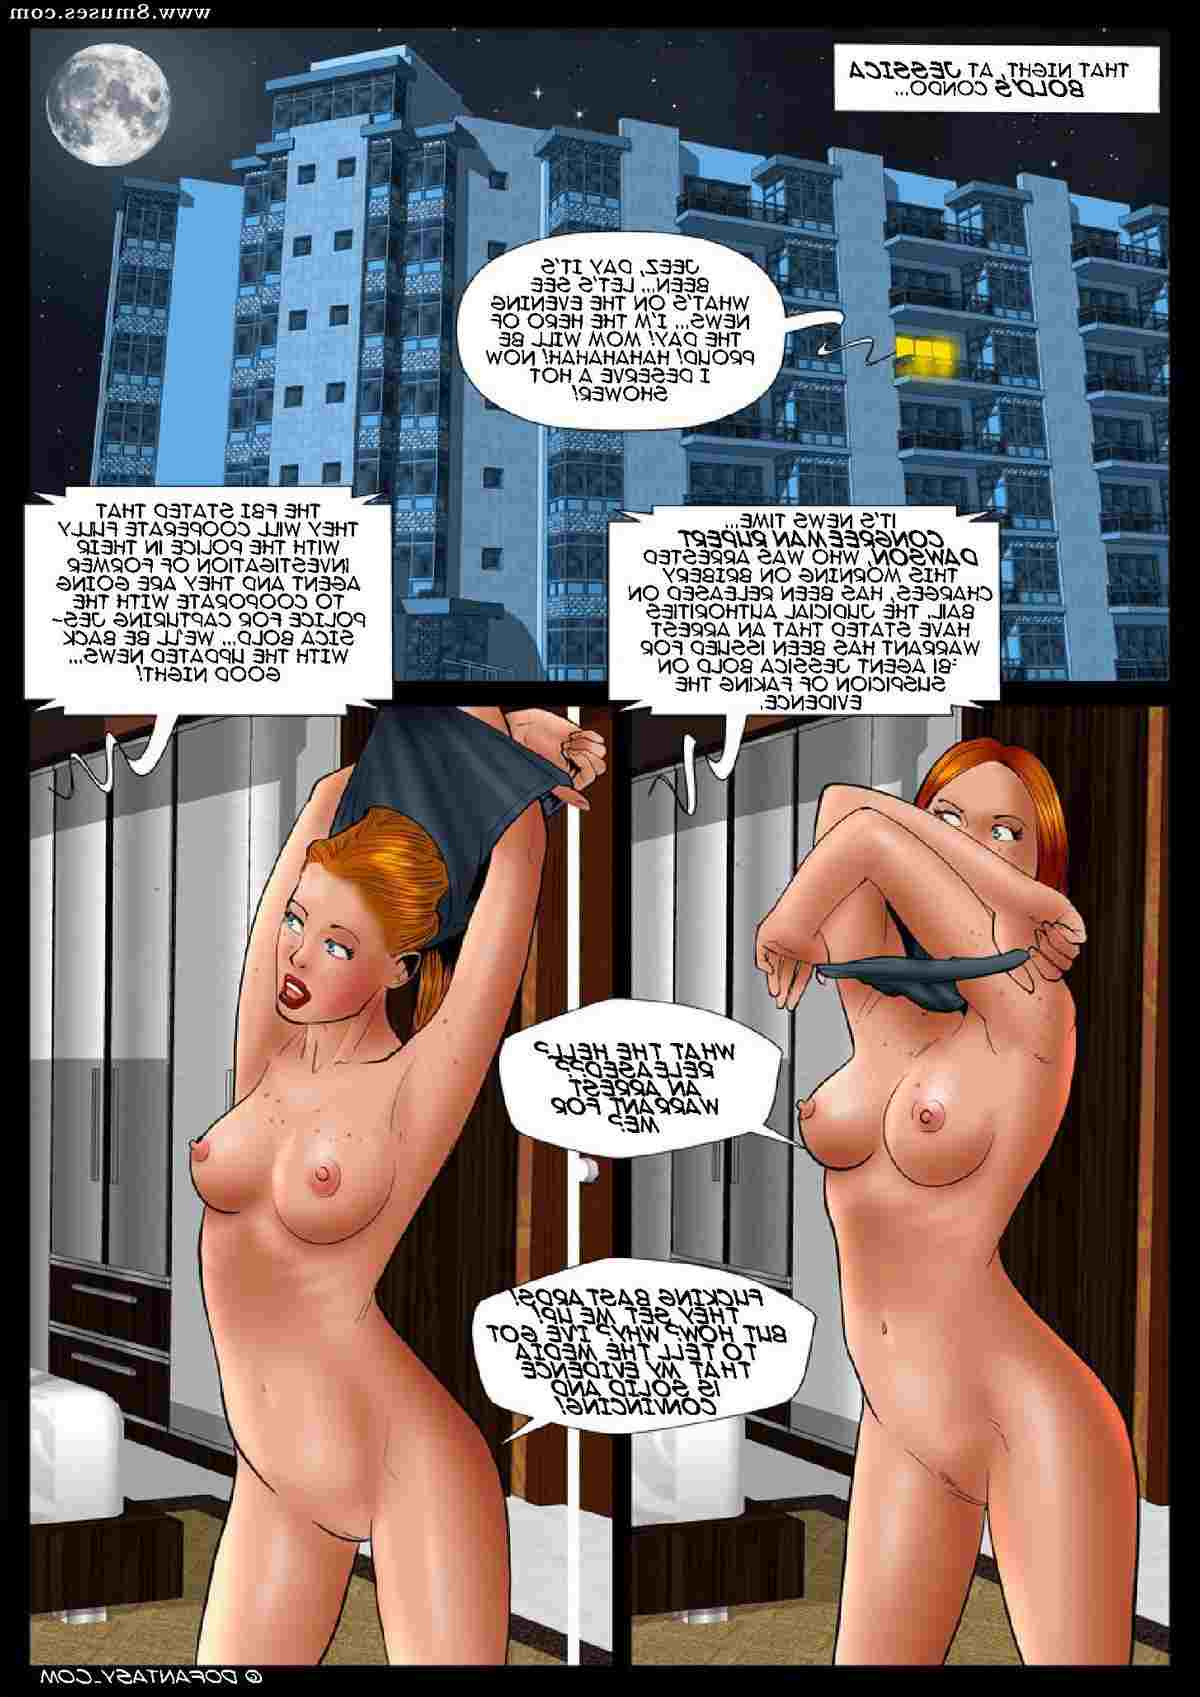 Fansadox-Comics/401-500/Fansadox-413-A-Bold-Officer-Cagri Fansadox_413_-_A_Bold_Officer_-_Cagri__8muses_-_Sex_and_Porn_Comics_5.jpg